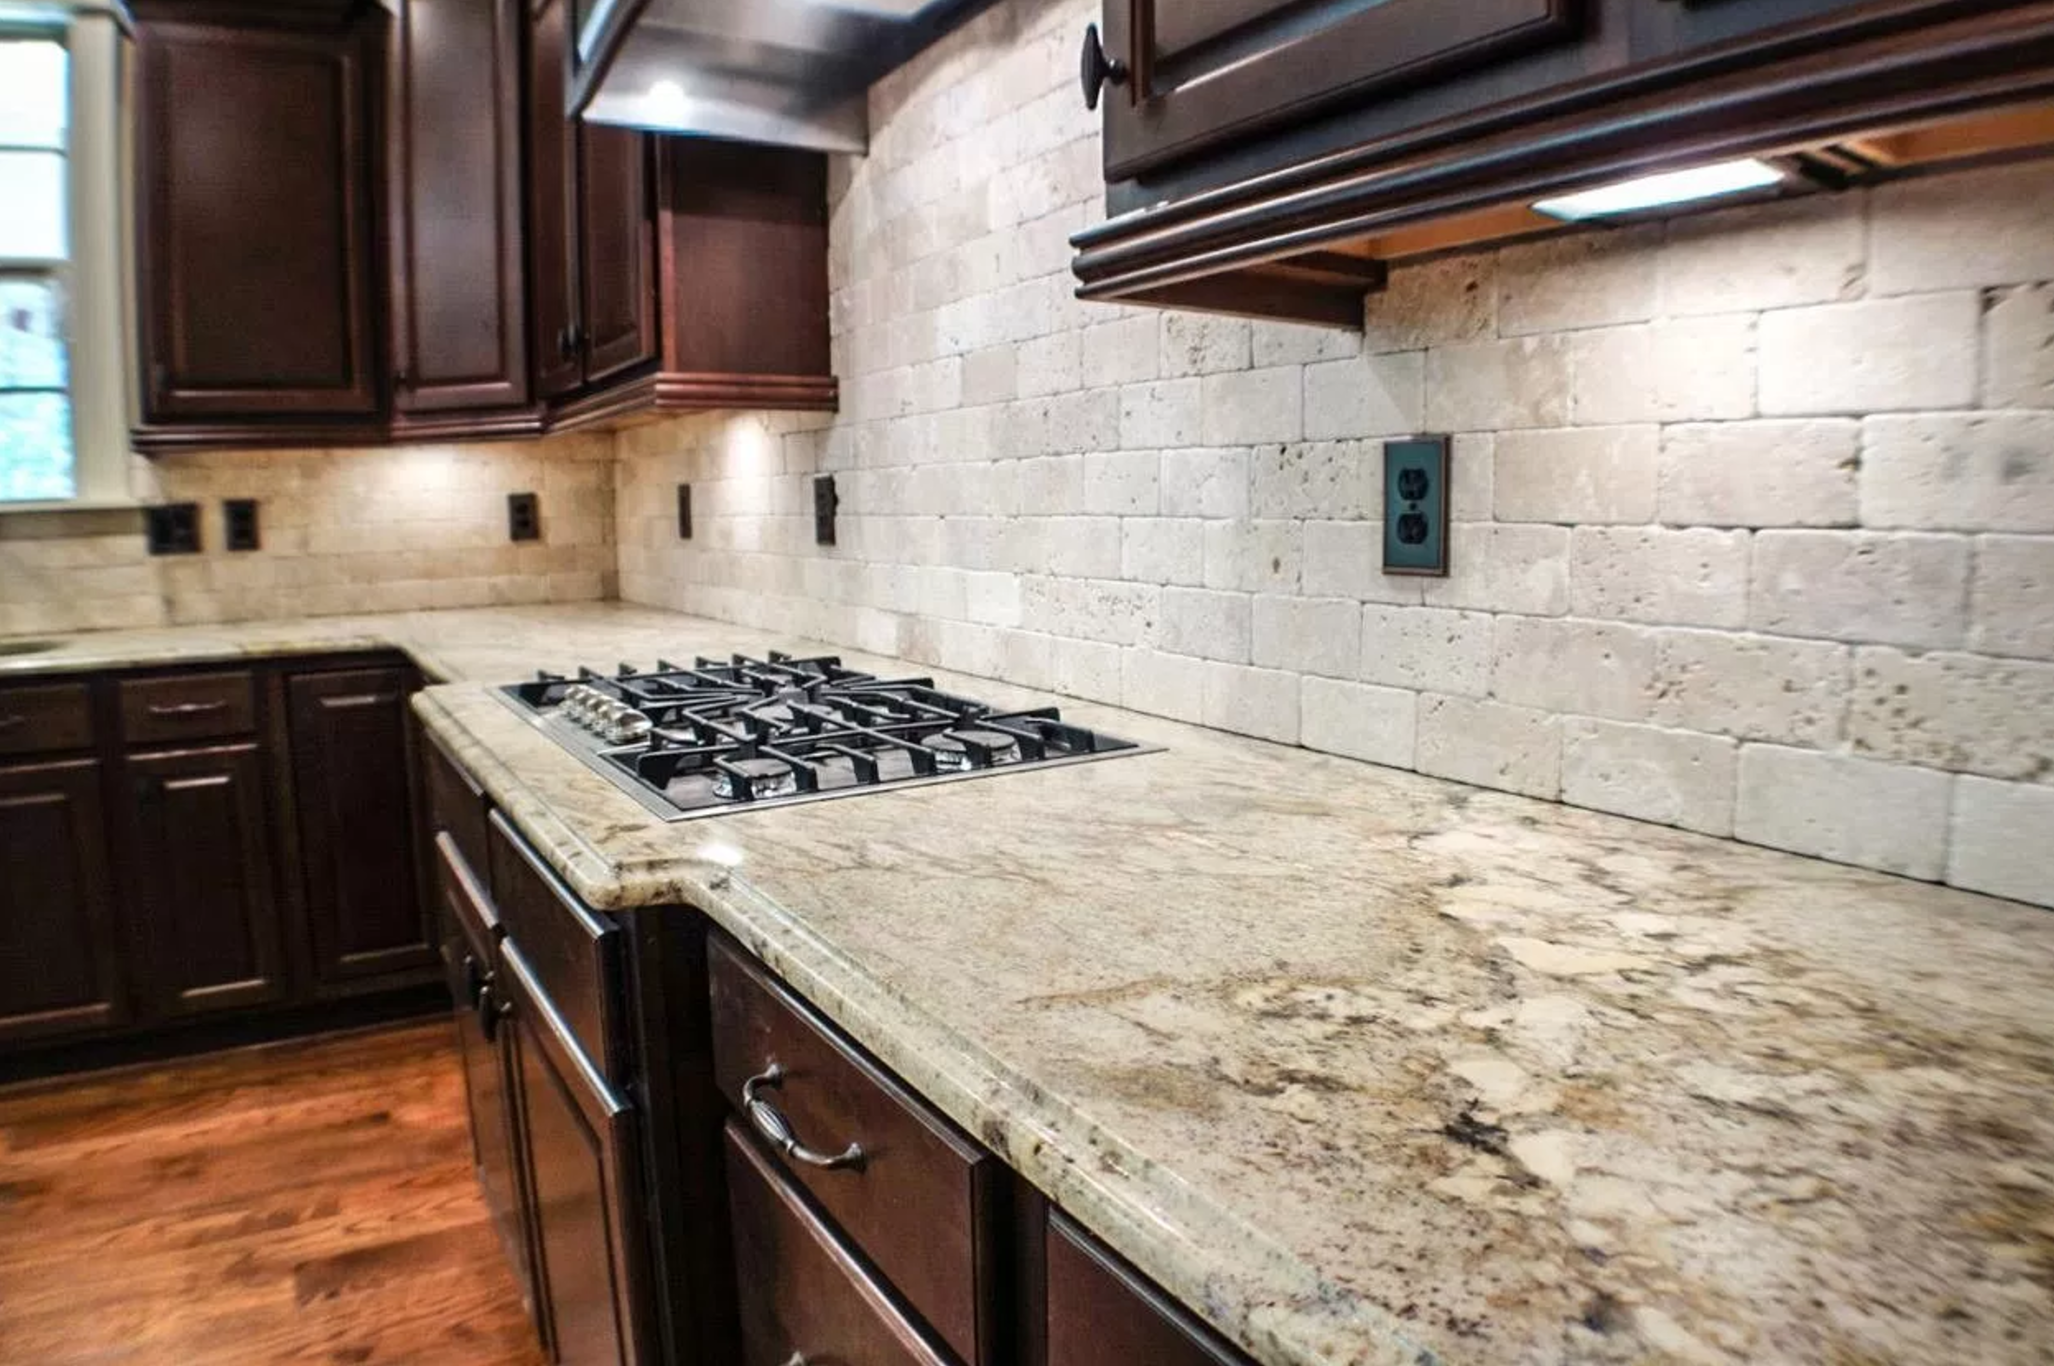 Granite Countertops Are Great For Kitchens Because They Are Heat Resistant  And Durable. Granite Comes In A Variety Of Colors And Patterns.